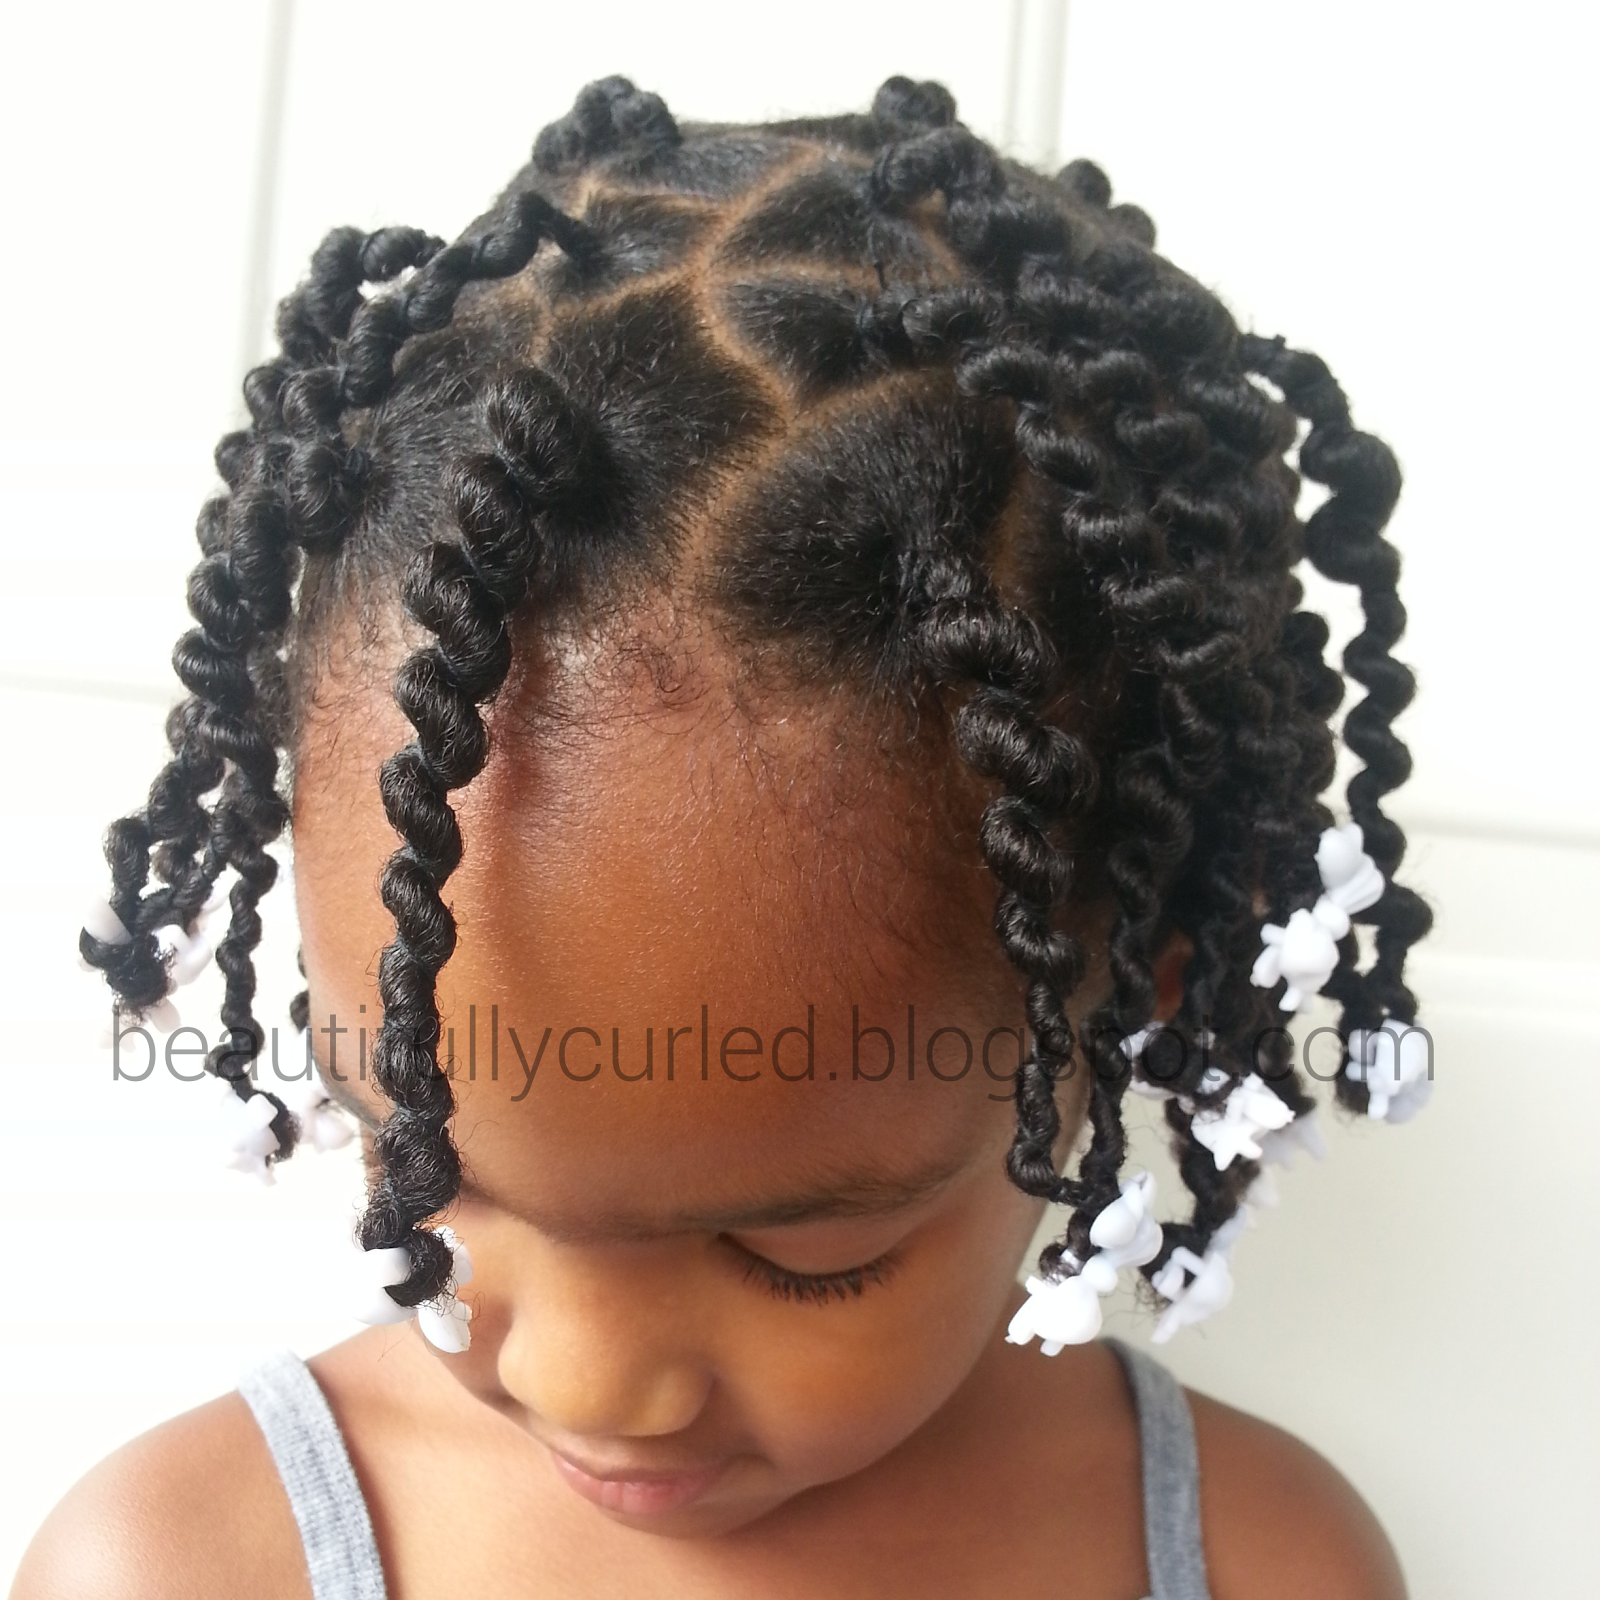 Beautifully Curled.......... First Attempt African Hair